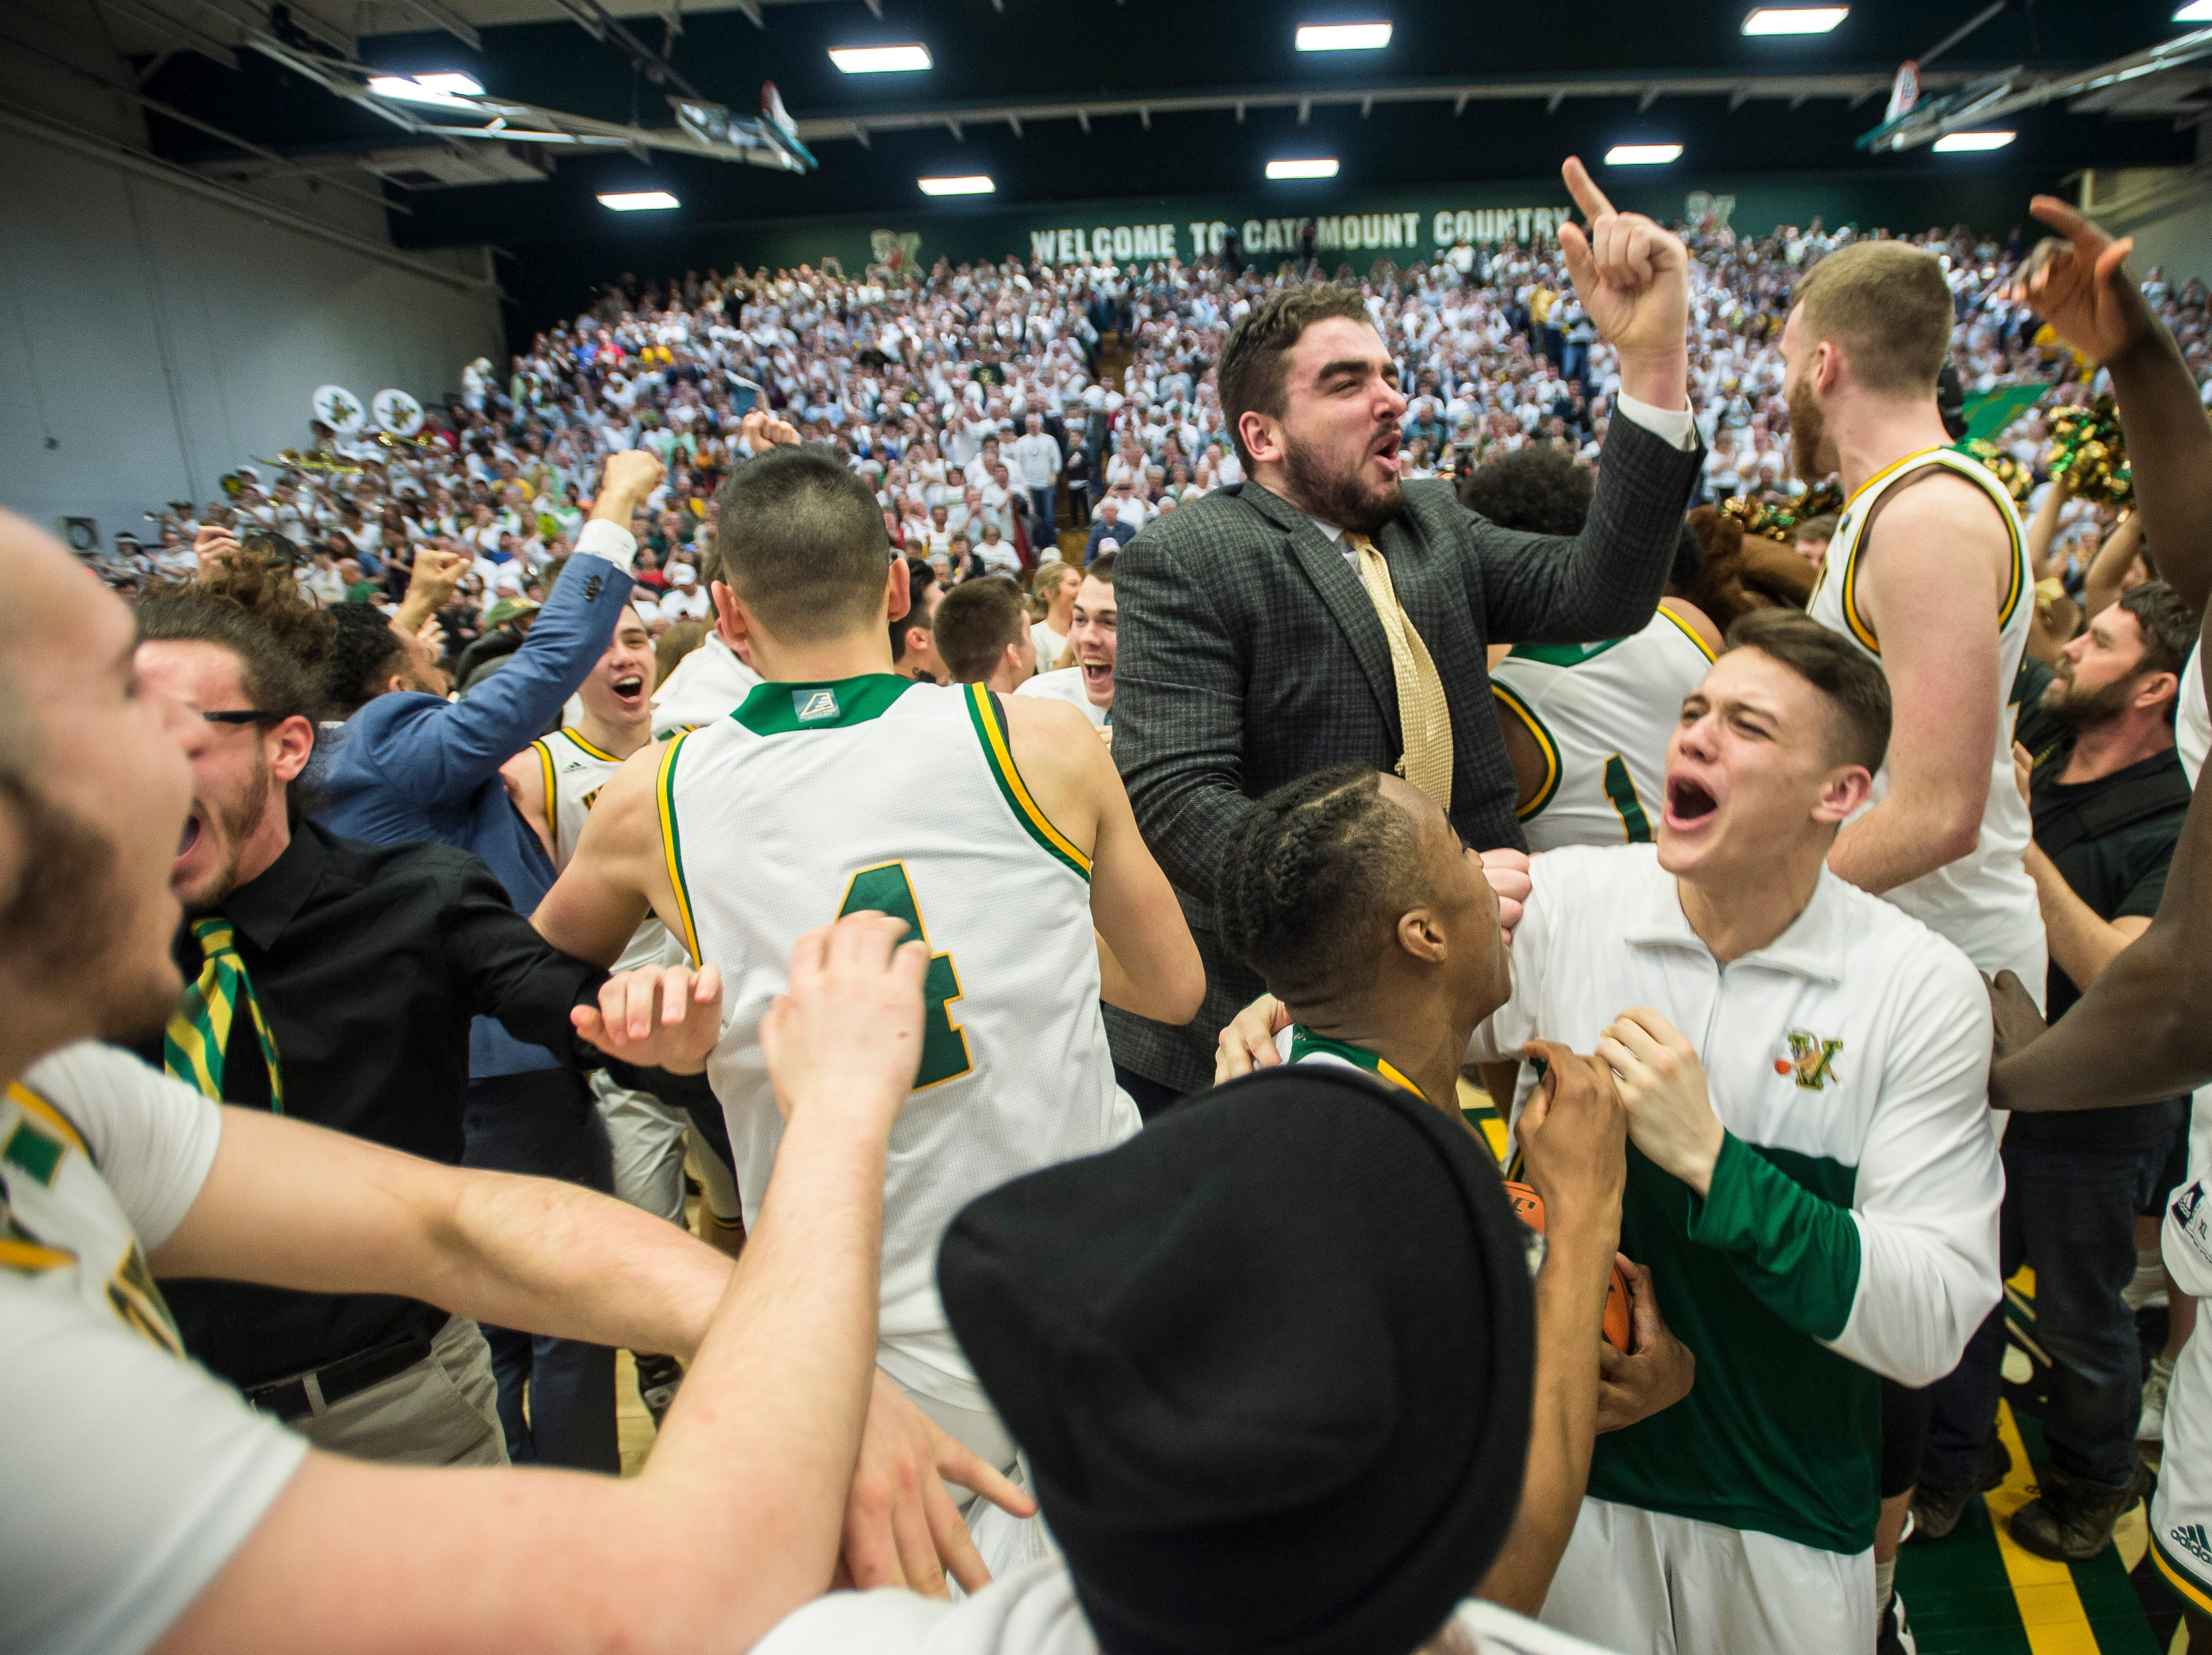 The UVM men's basketball team celebrates after winning the America East Championship in Burlington, Vt., on Saturday, March 16, 2019. UVM won 66-49 and will head to the NCAA March Madness Tournament.